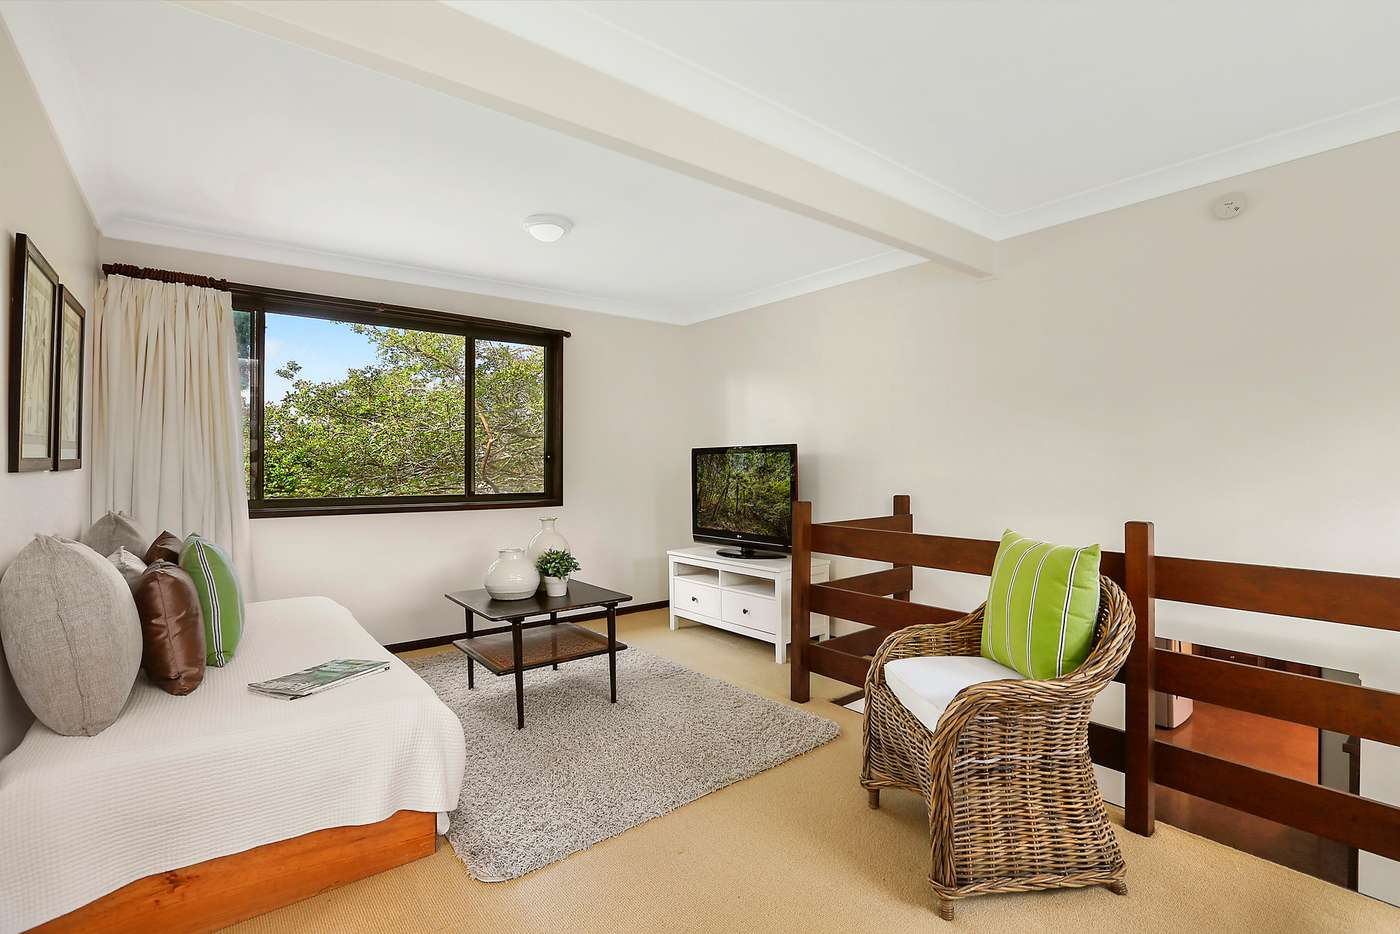 Seventh view of Homely house listing, 12 Middle Harbour Road, Lindfield NSW 2070